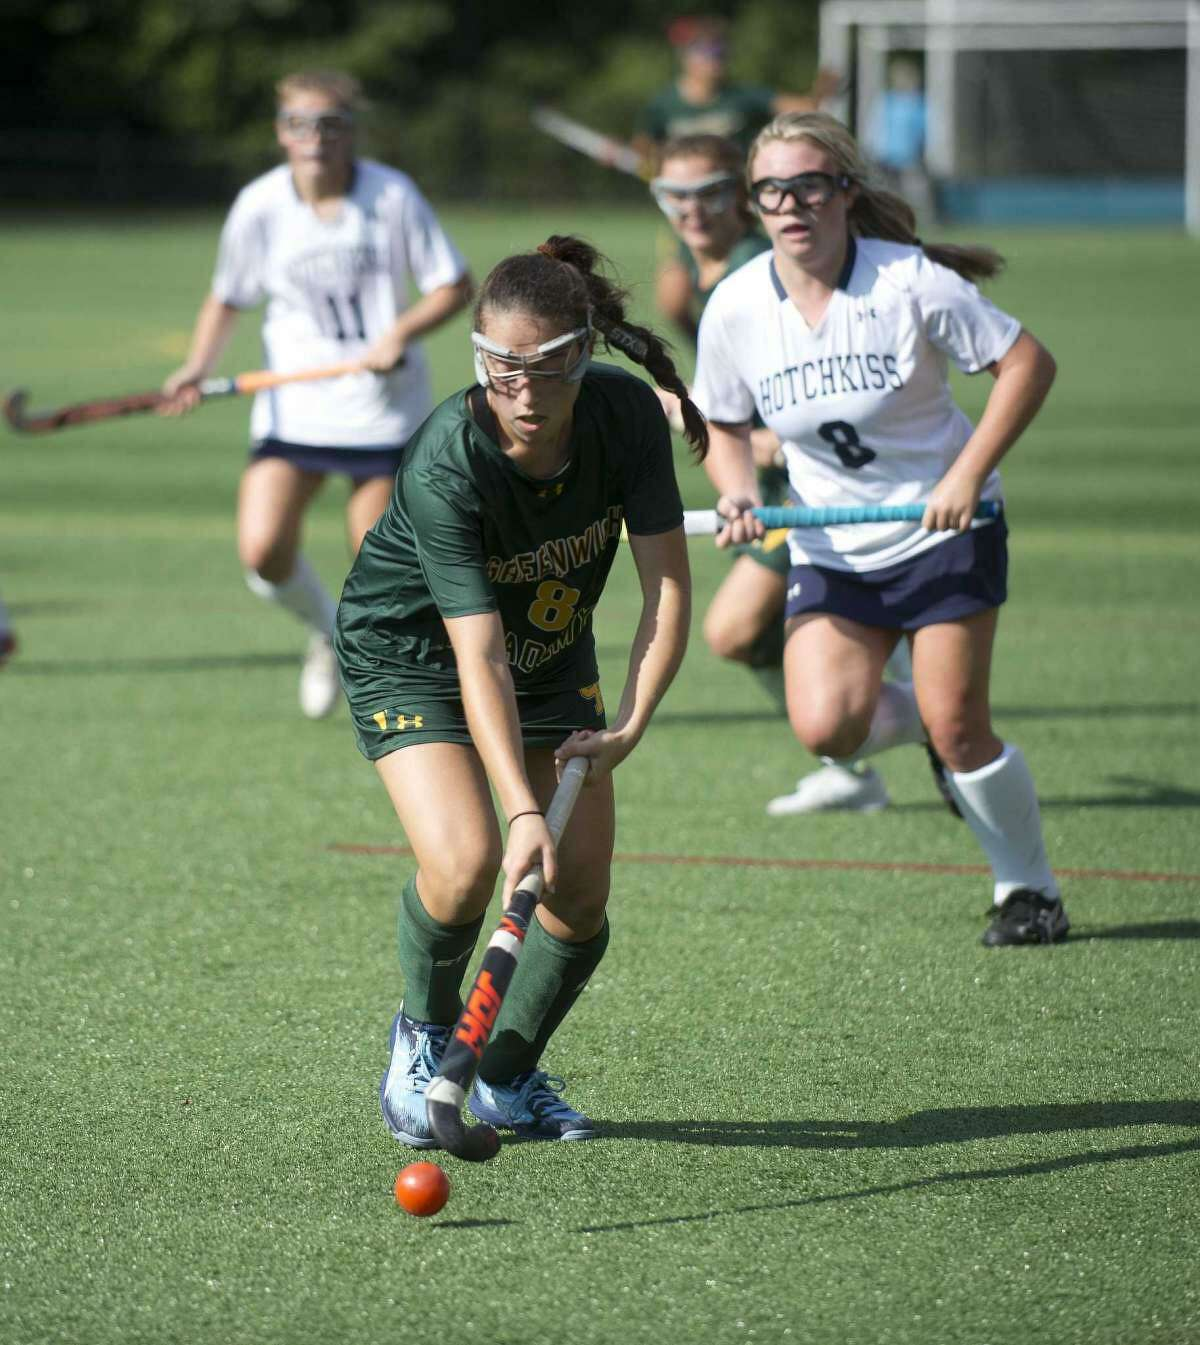 Julia Freedman moves the ball up the field for Greenwich Academy in its game against Hotchkiss School in 2019. Freedman is one of the senior captains of the Greenwich Academy field hockey team this season.